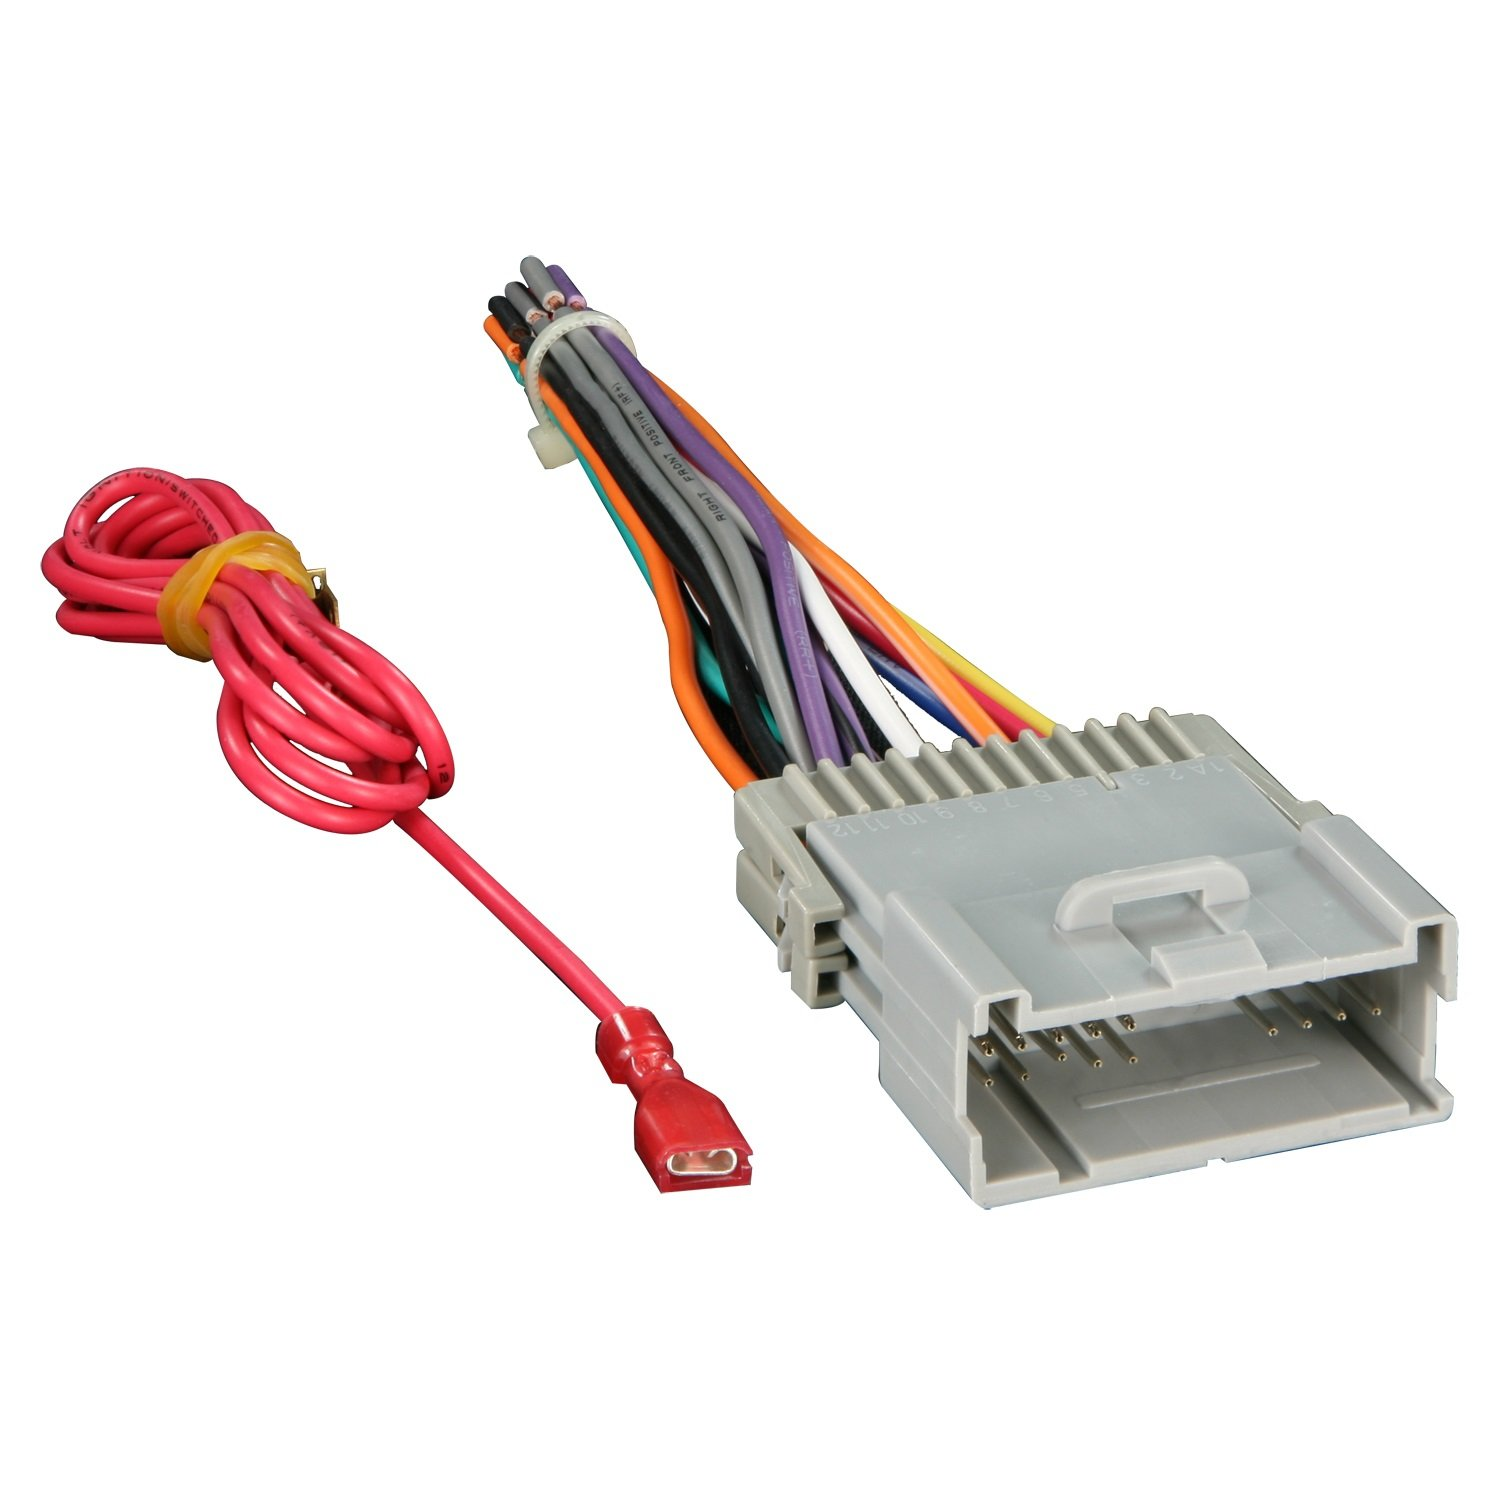 61eewxp9orL._SL1500_ amazon com metra 70 2003 radio wiring harness for gm 98 08  at virtualis.co